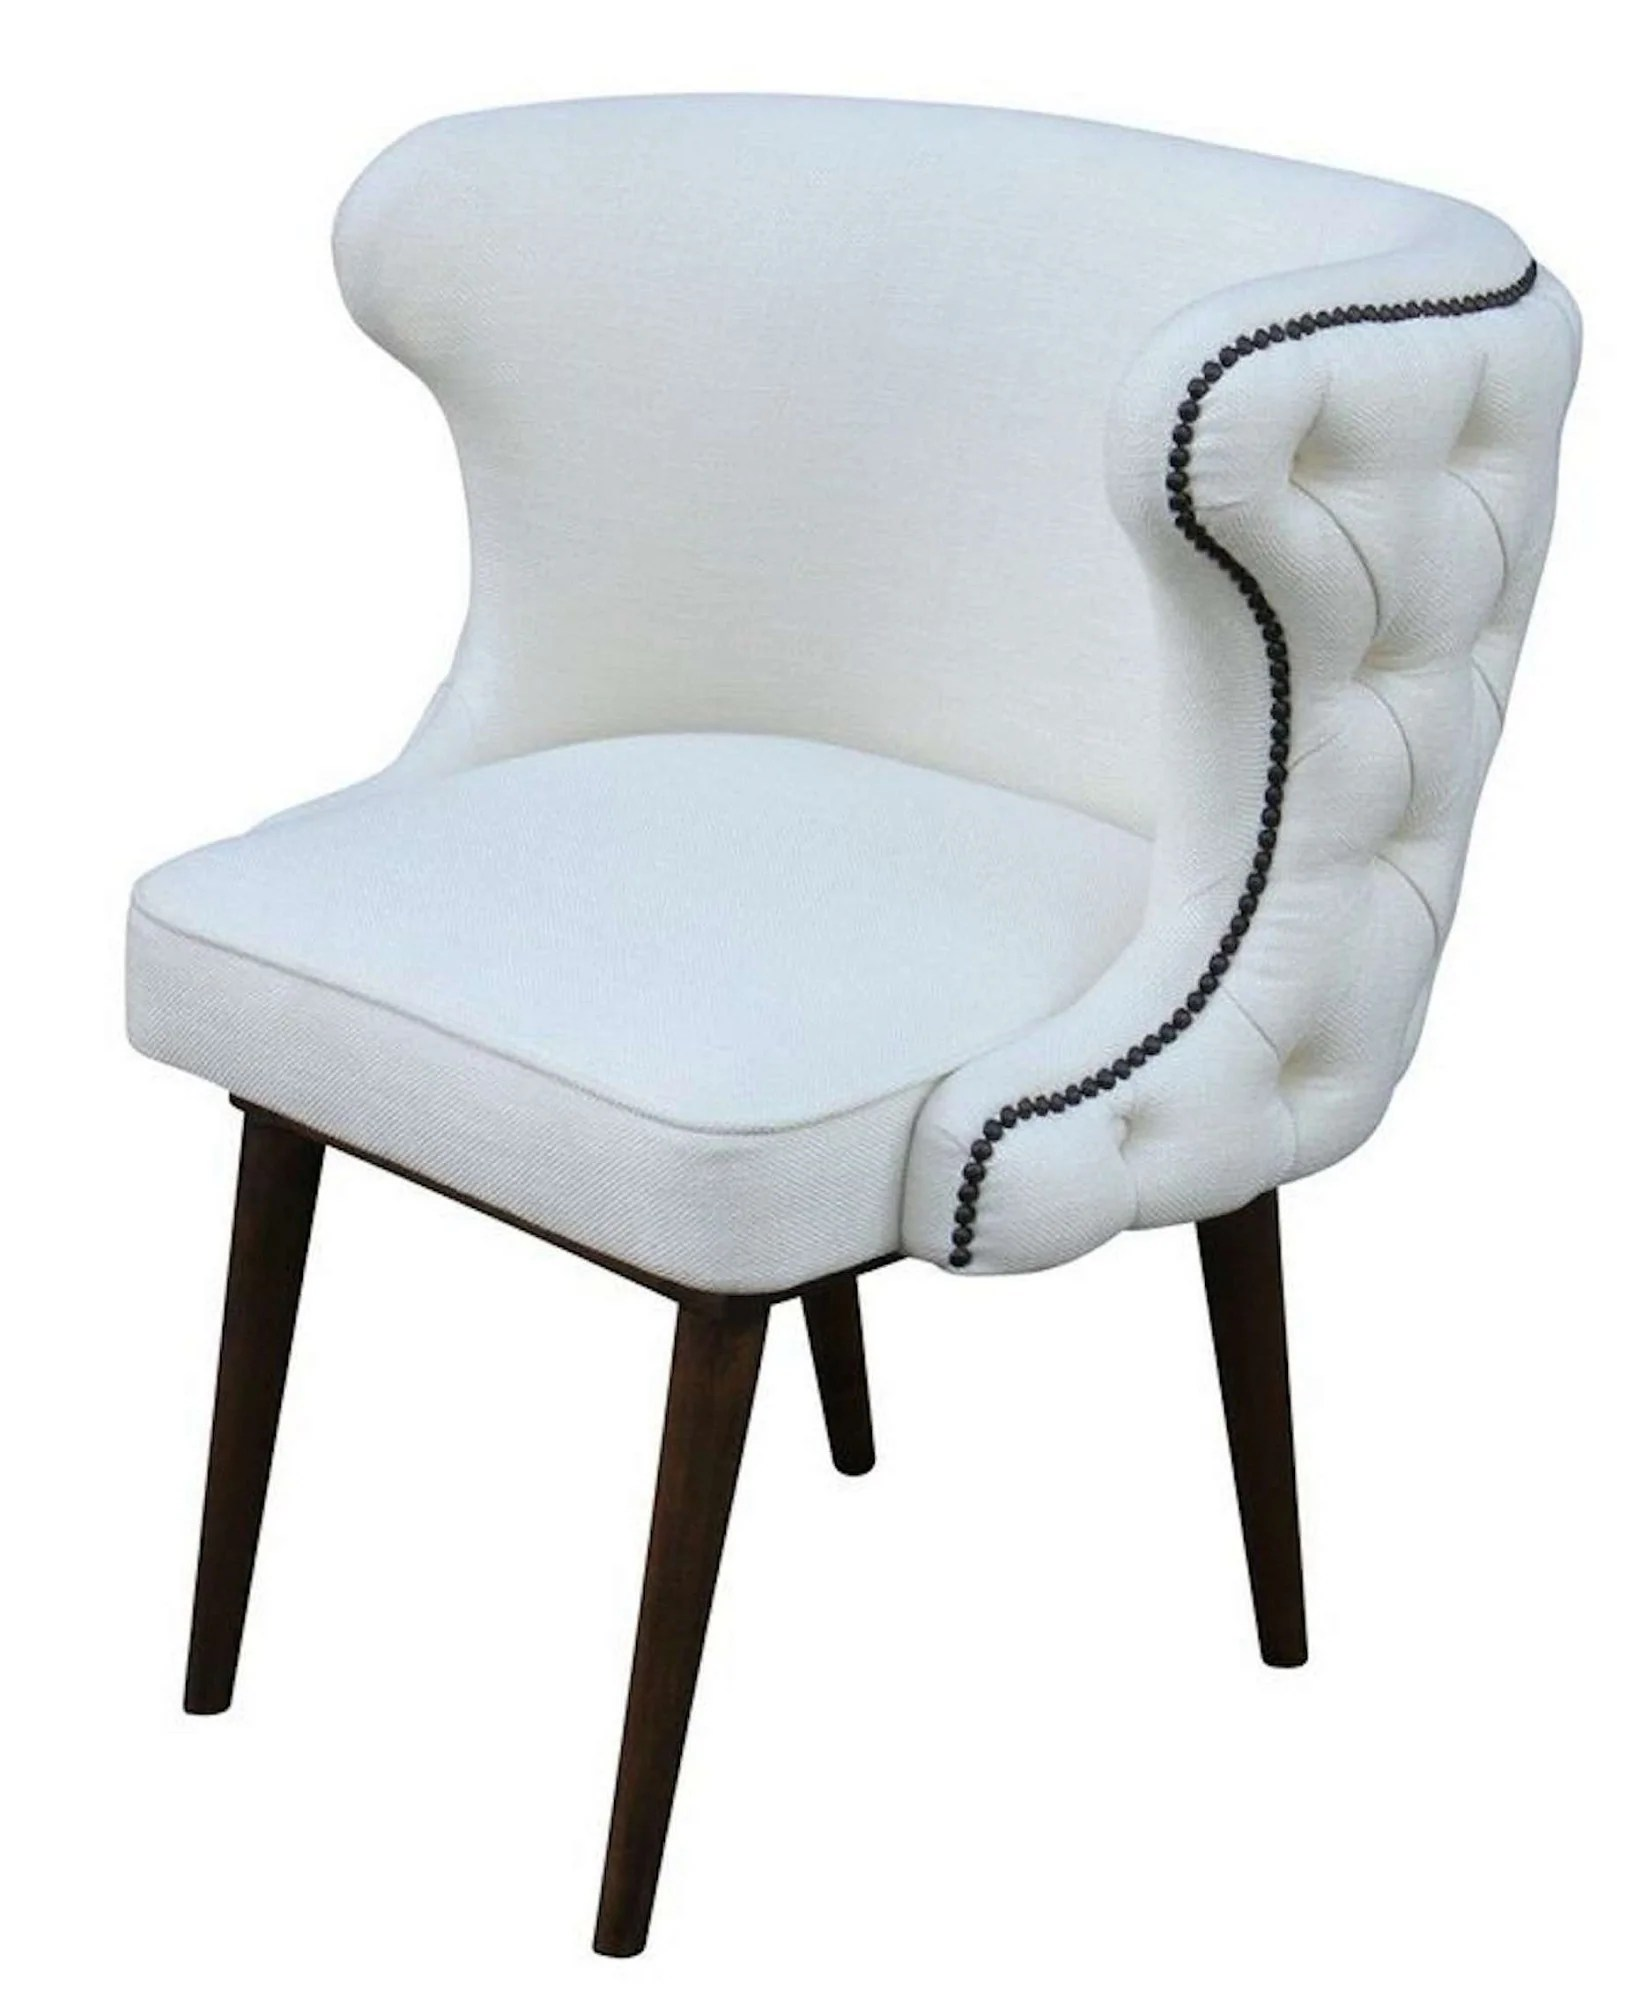 White Barrel Chair Brentwood Chair Upholstered Dining Chair Mortise And Tenon